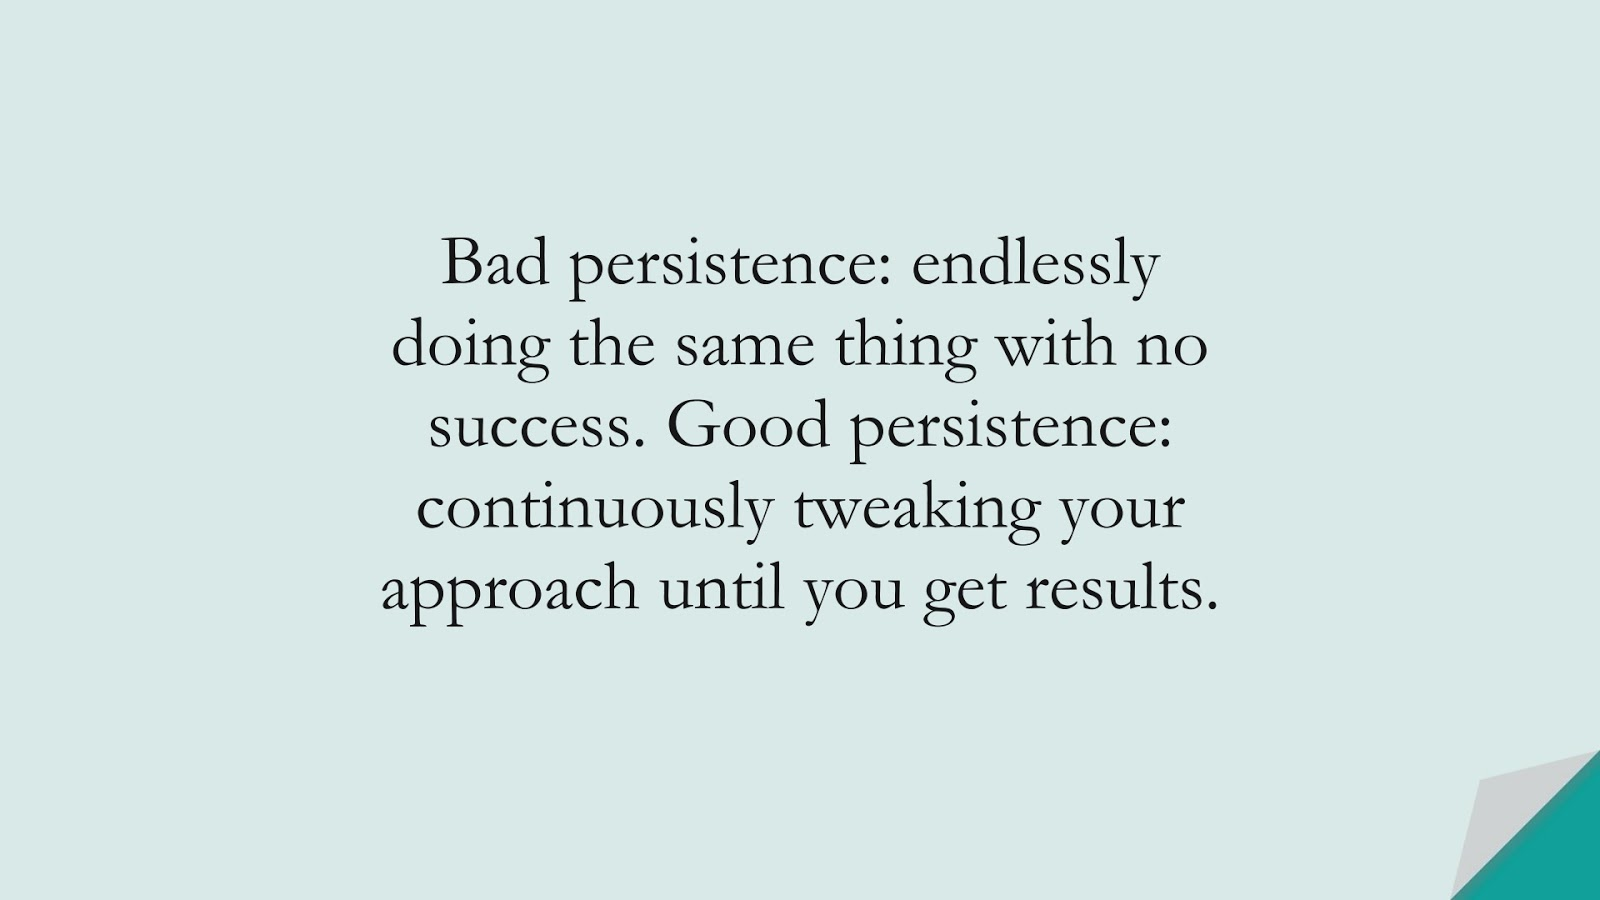 Bad persistence: endlessly doing the same thing with no success. Good persistence: continuously tweaking your approach until you get results.FALSE